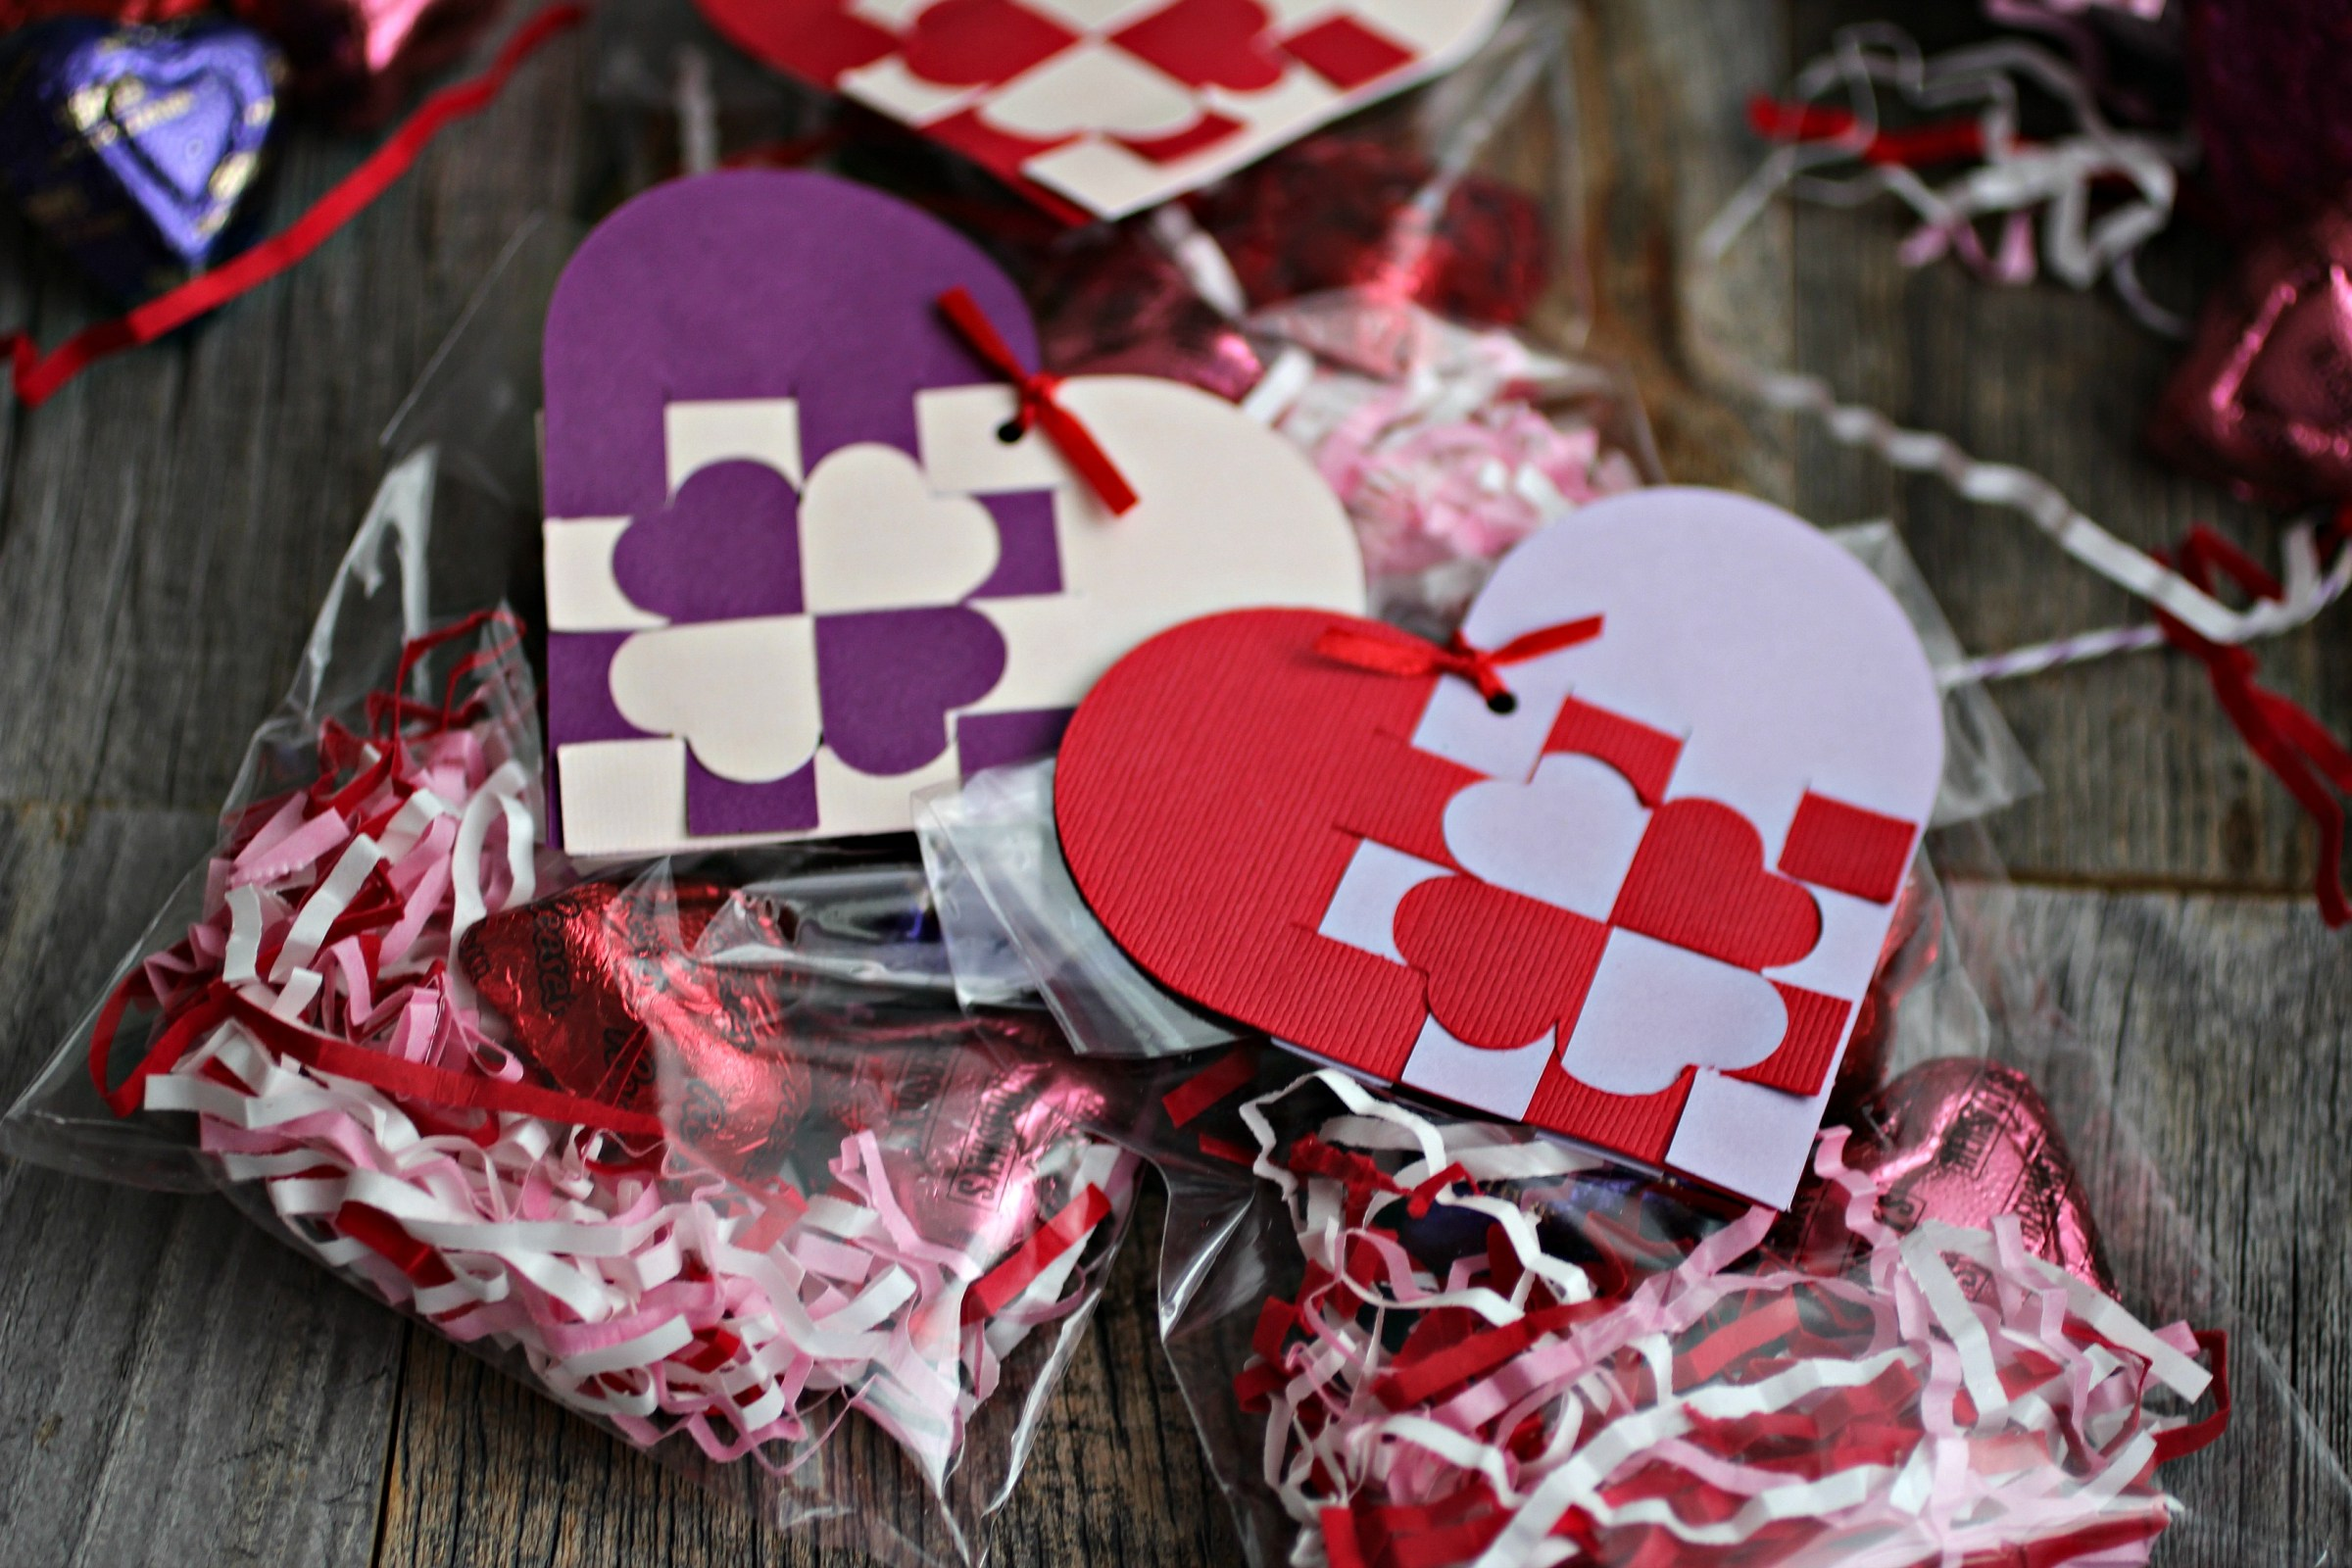 DIY heart shaped woven gift tags in purple and red